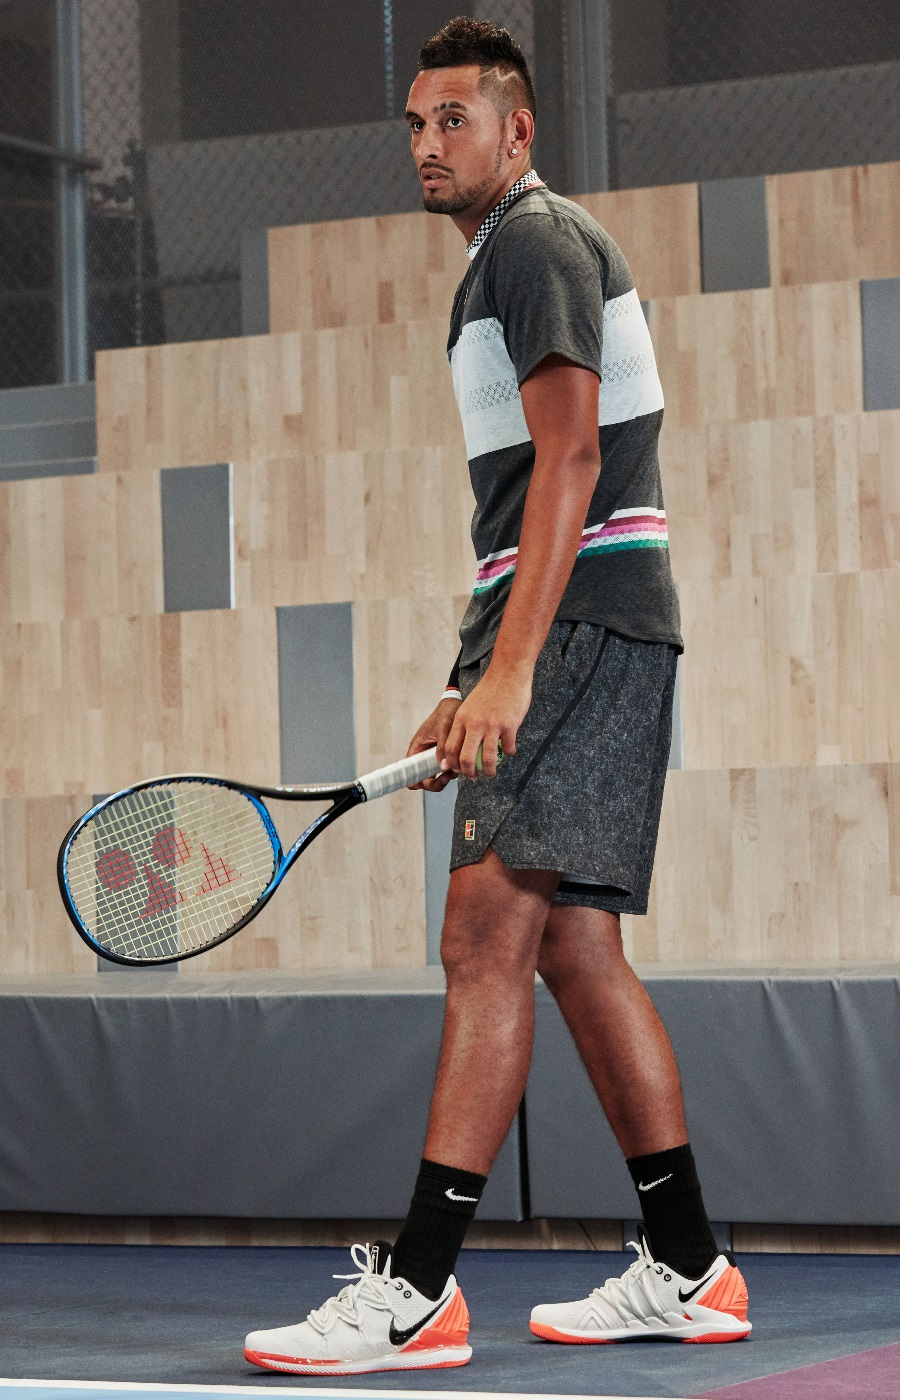 nike melbourne collection tennis